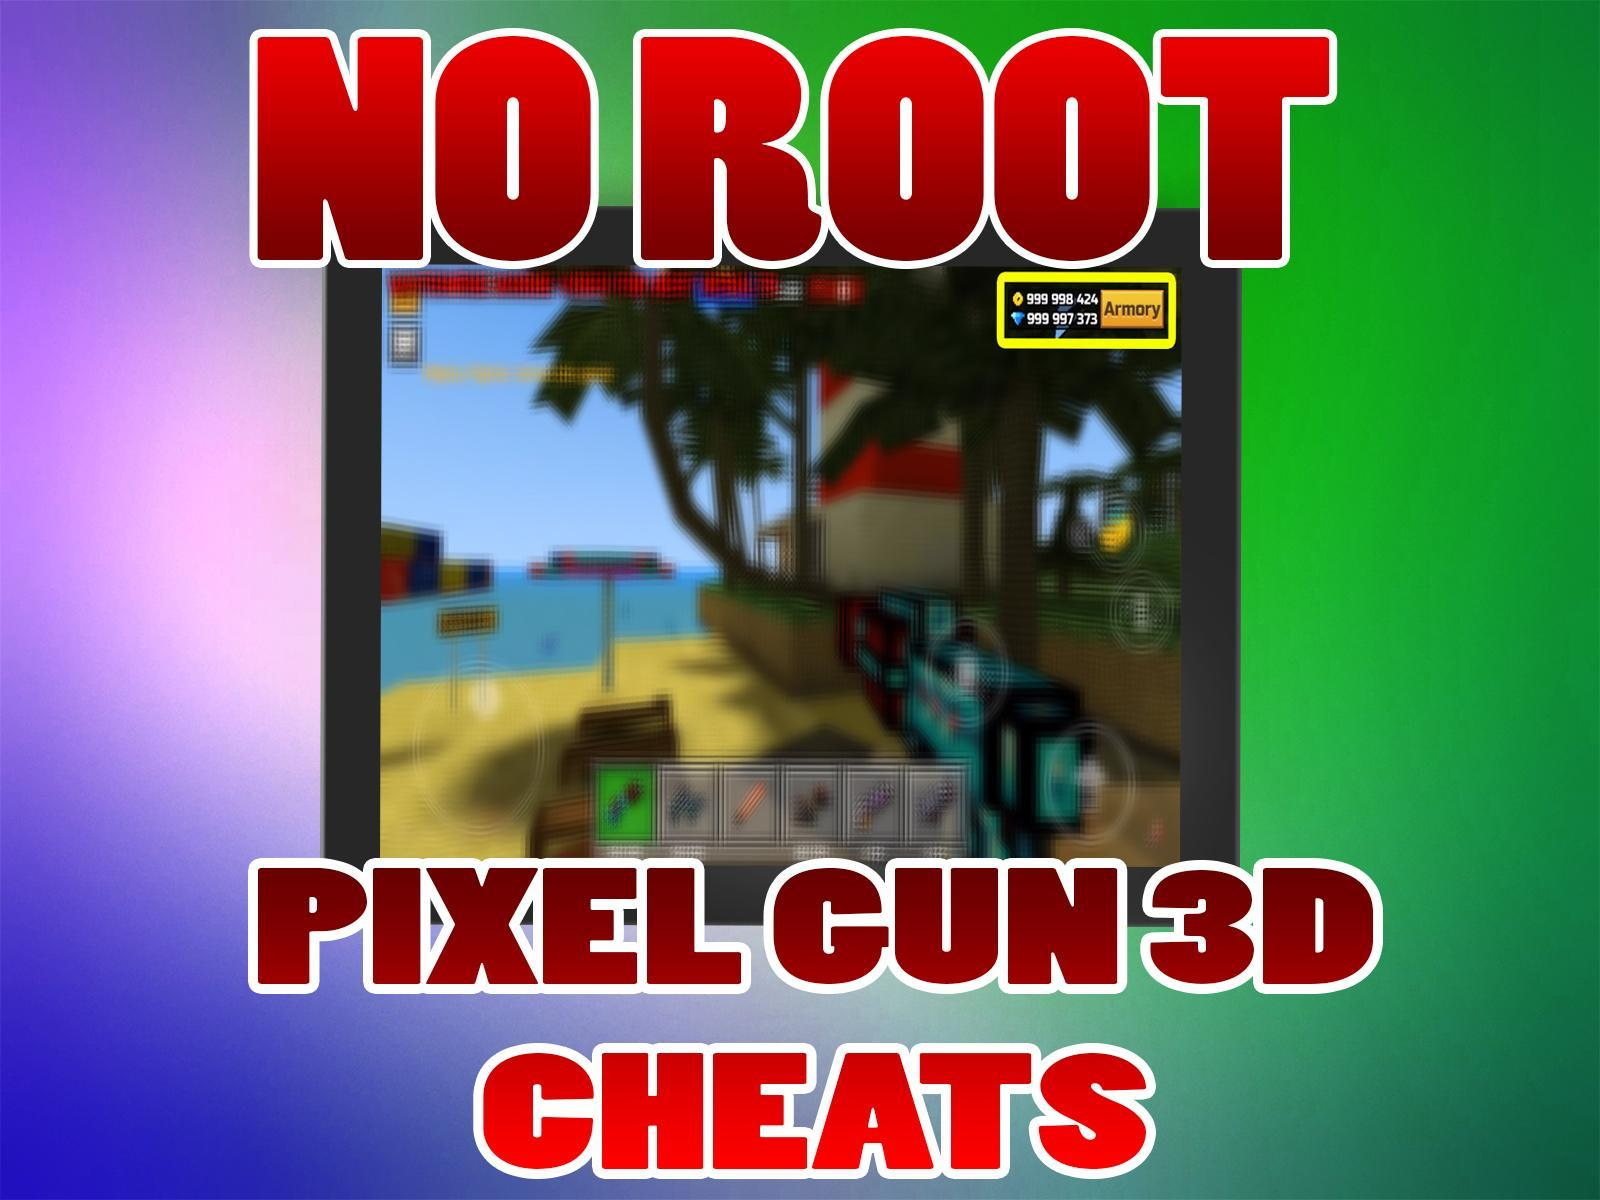 Cheats For Pixel Gun 3D No Root prank for Android - APK Download